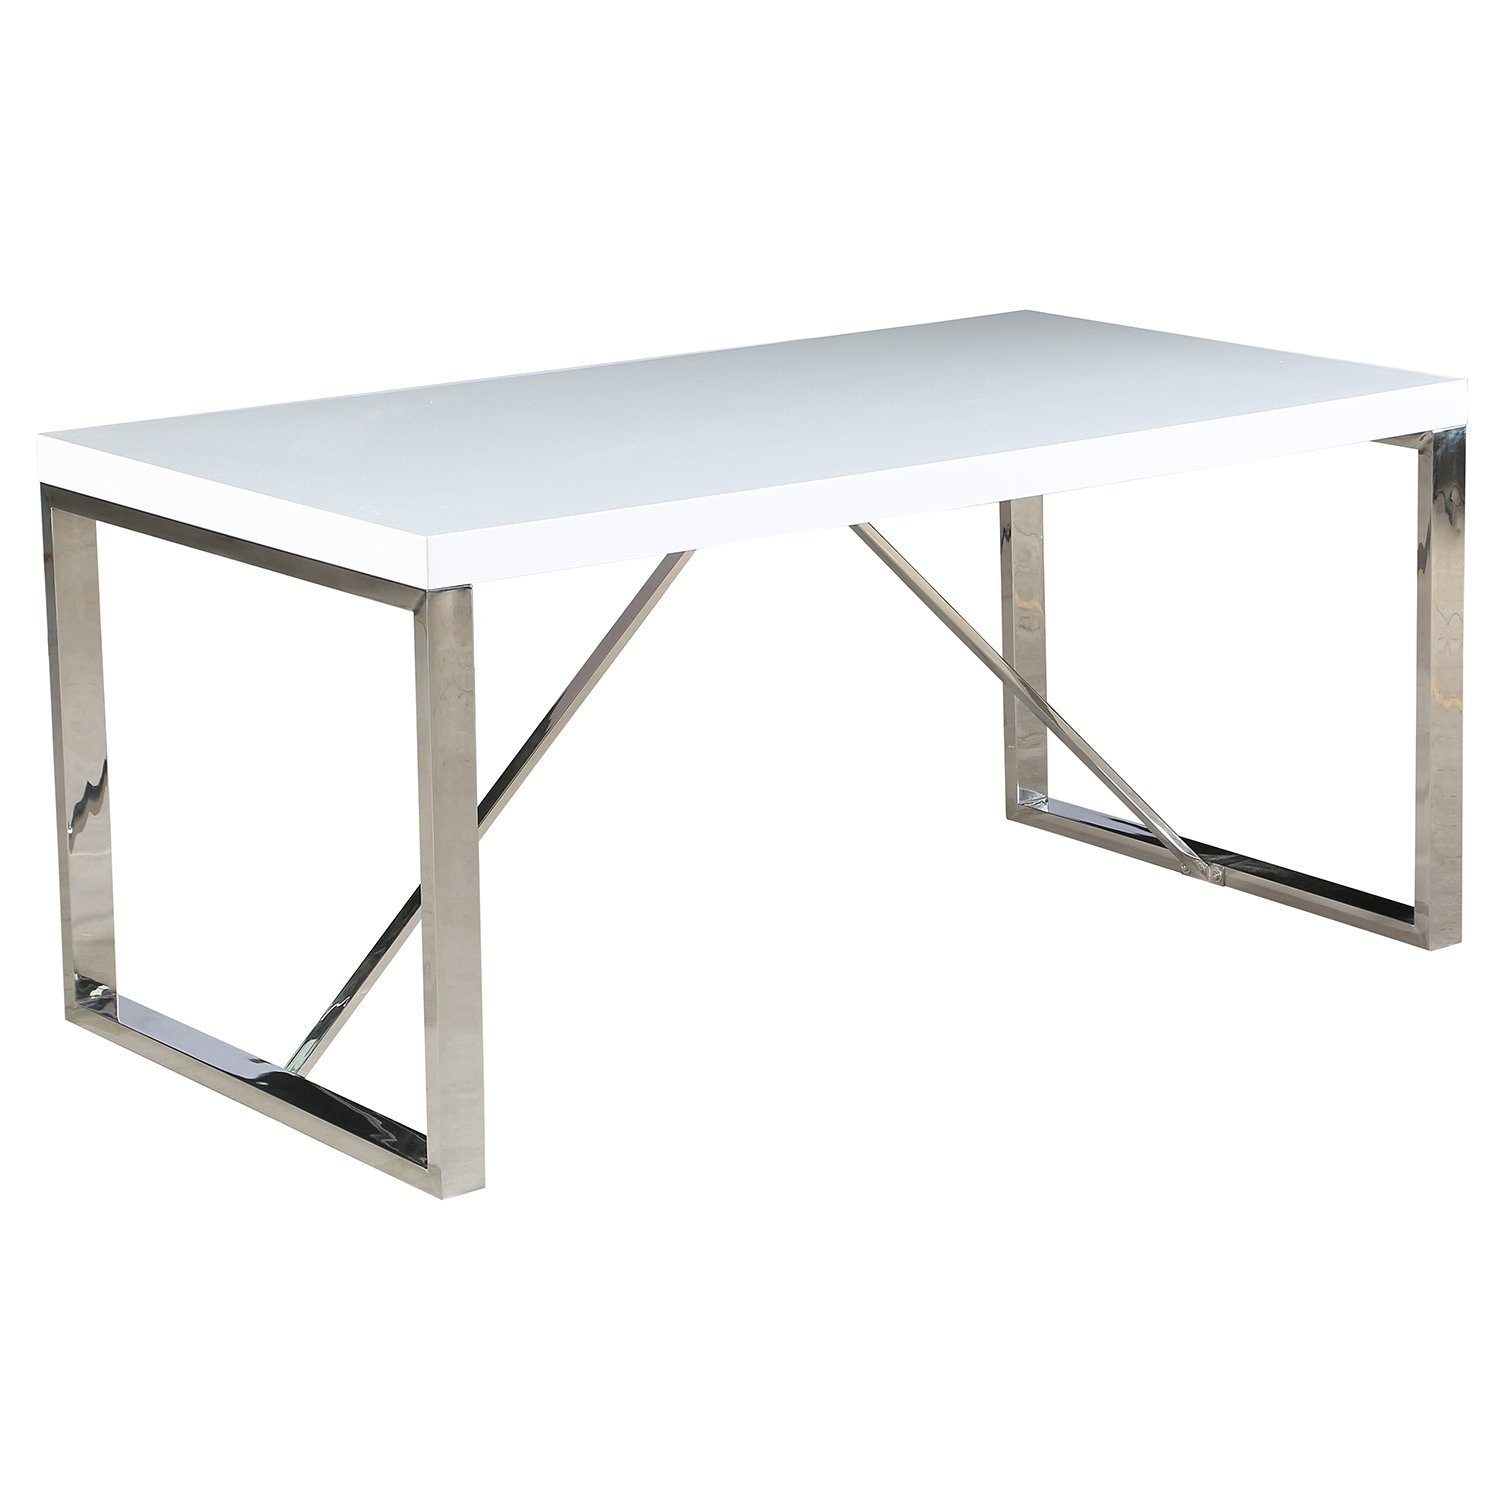 Shop 2xhome Modern Mid Century White Glossy Paint Wood Top Silver Chrome Steel Leg Base Rectangle Dining Table Home Office Restaurant On Sale Overstock 17041053